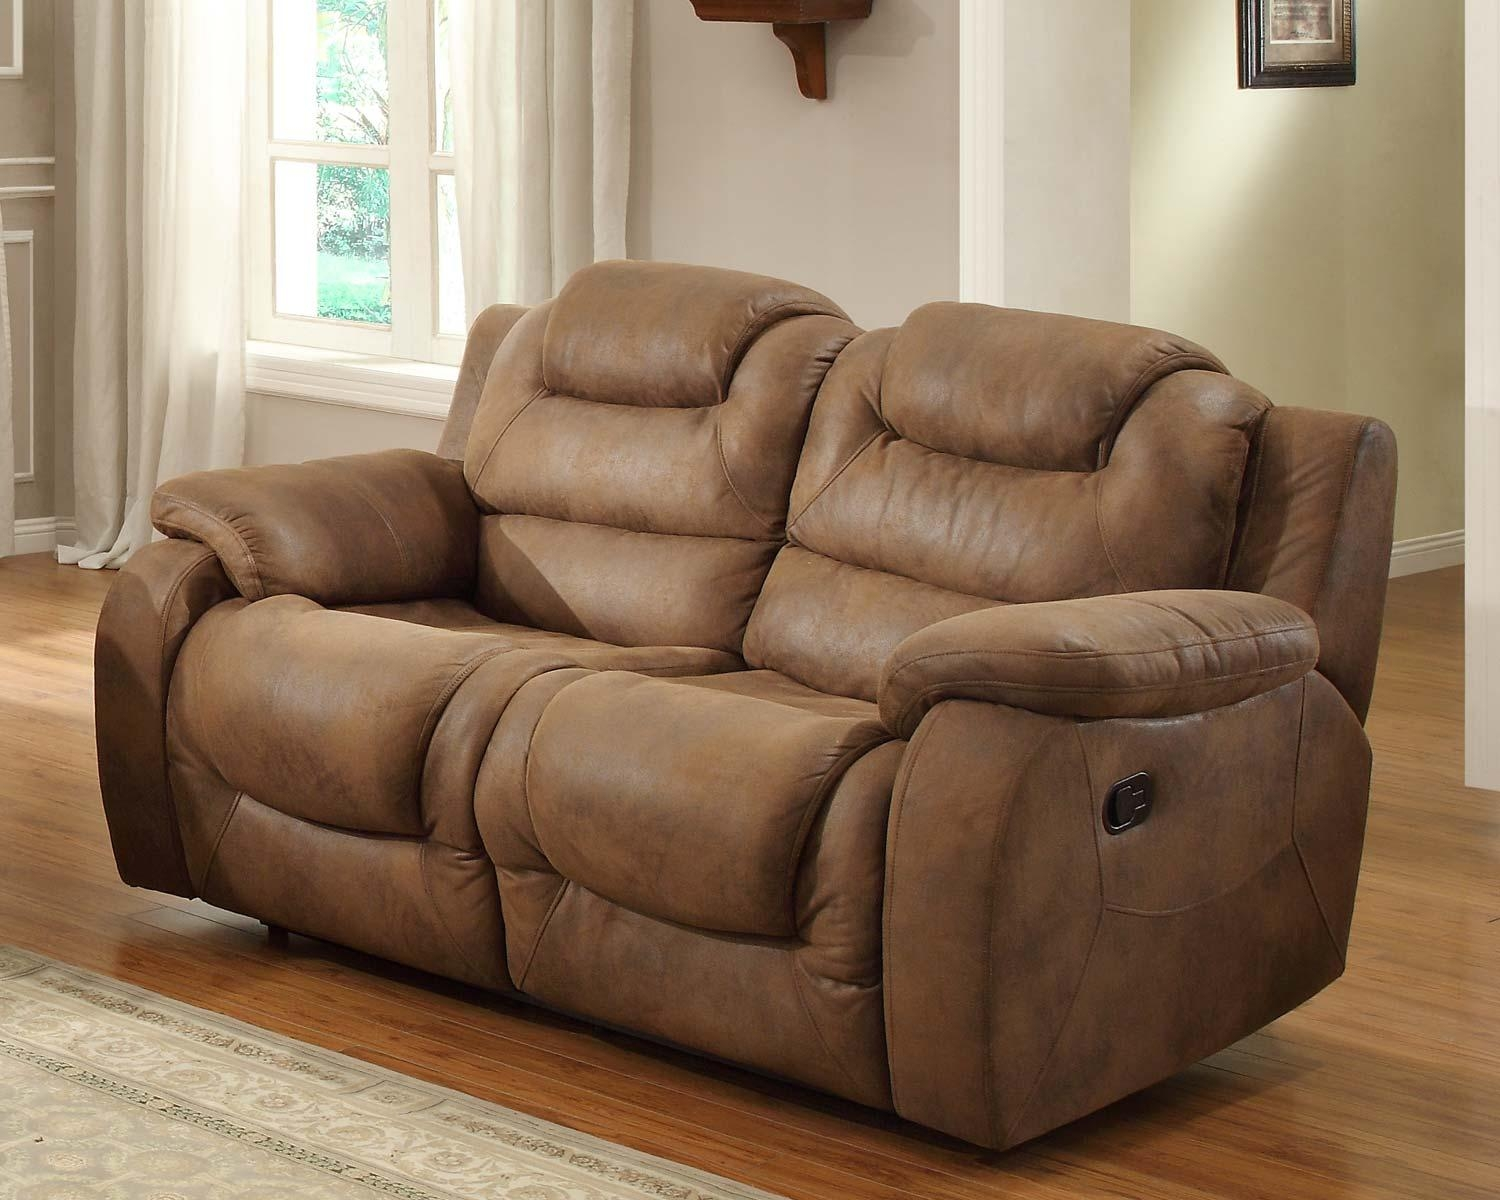 Sofas Center : Double Recliner Sofa Hoyt Reclining In Brown Bomber Inside Bomber Leather Sofas (View 20 of 20)